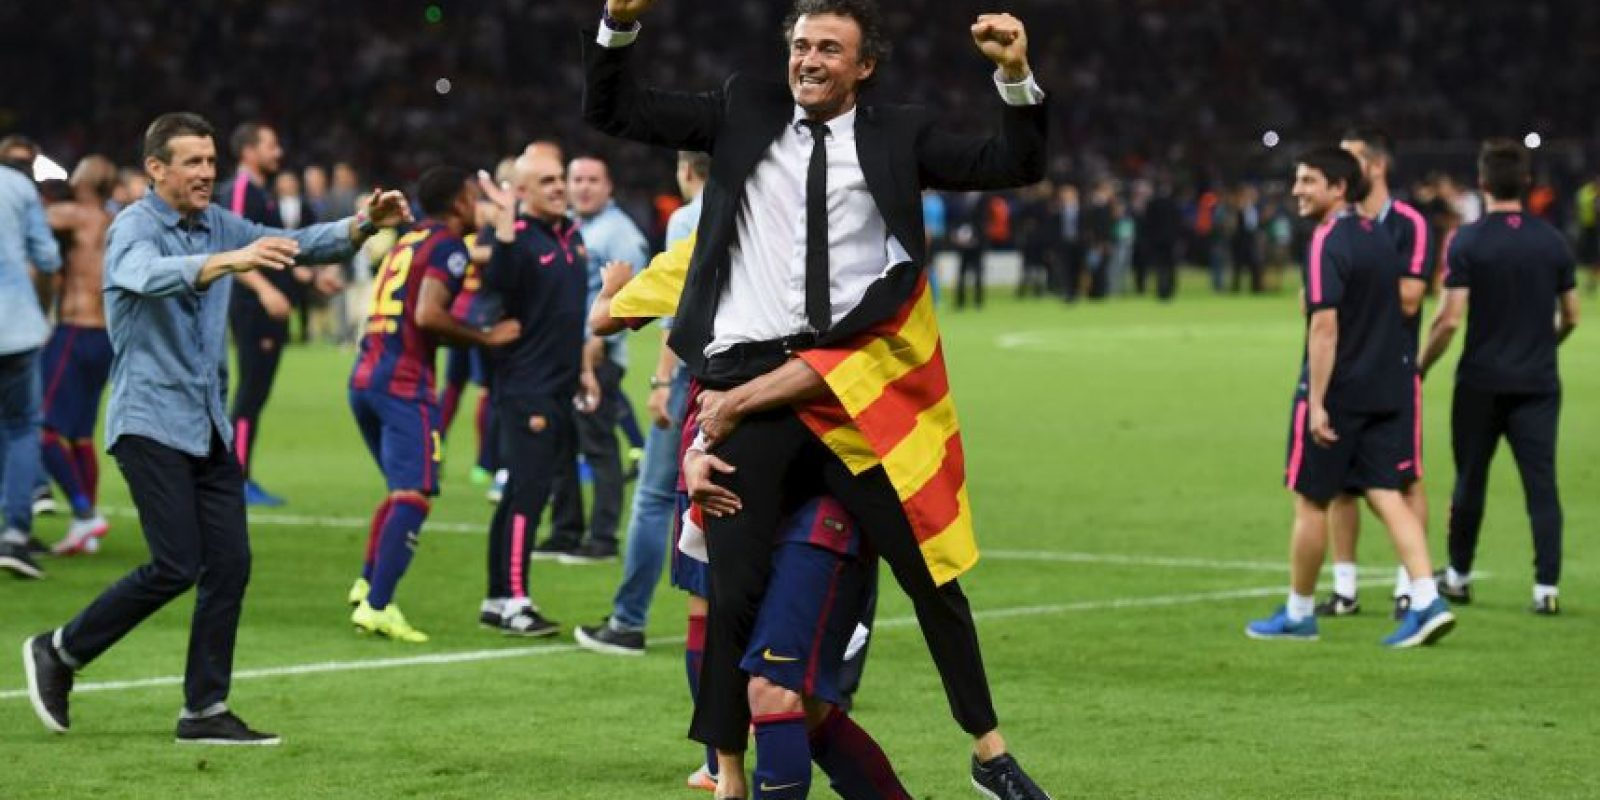 3. Luis Enrique Foto: Getty Images